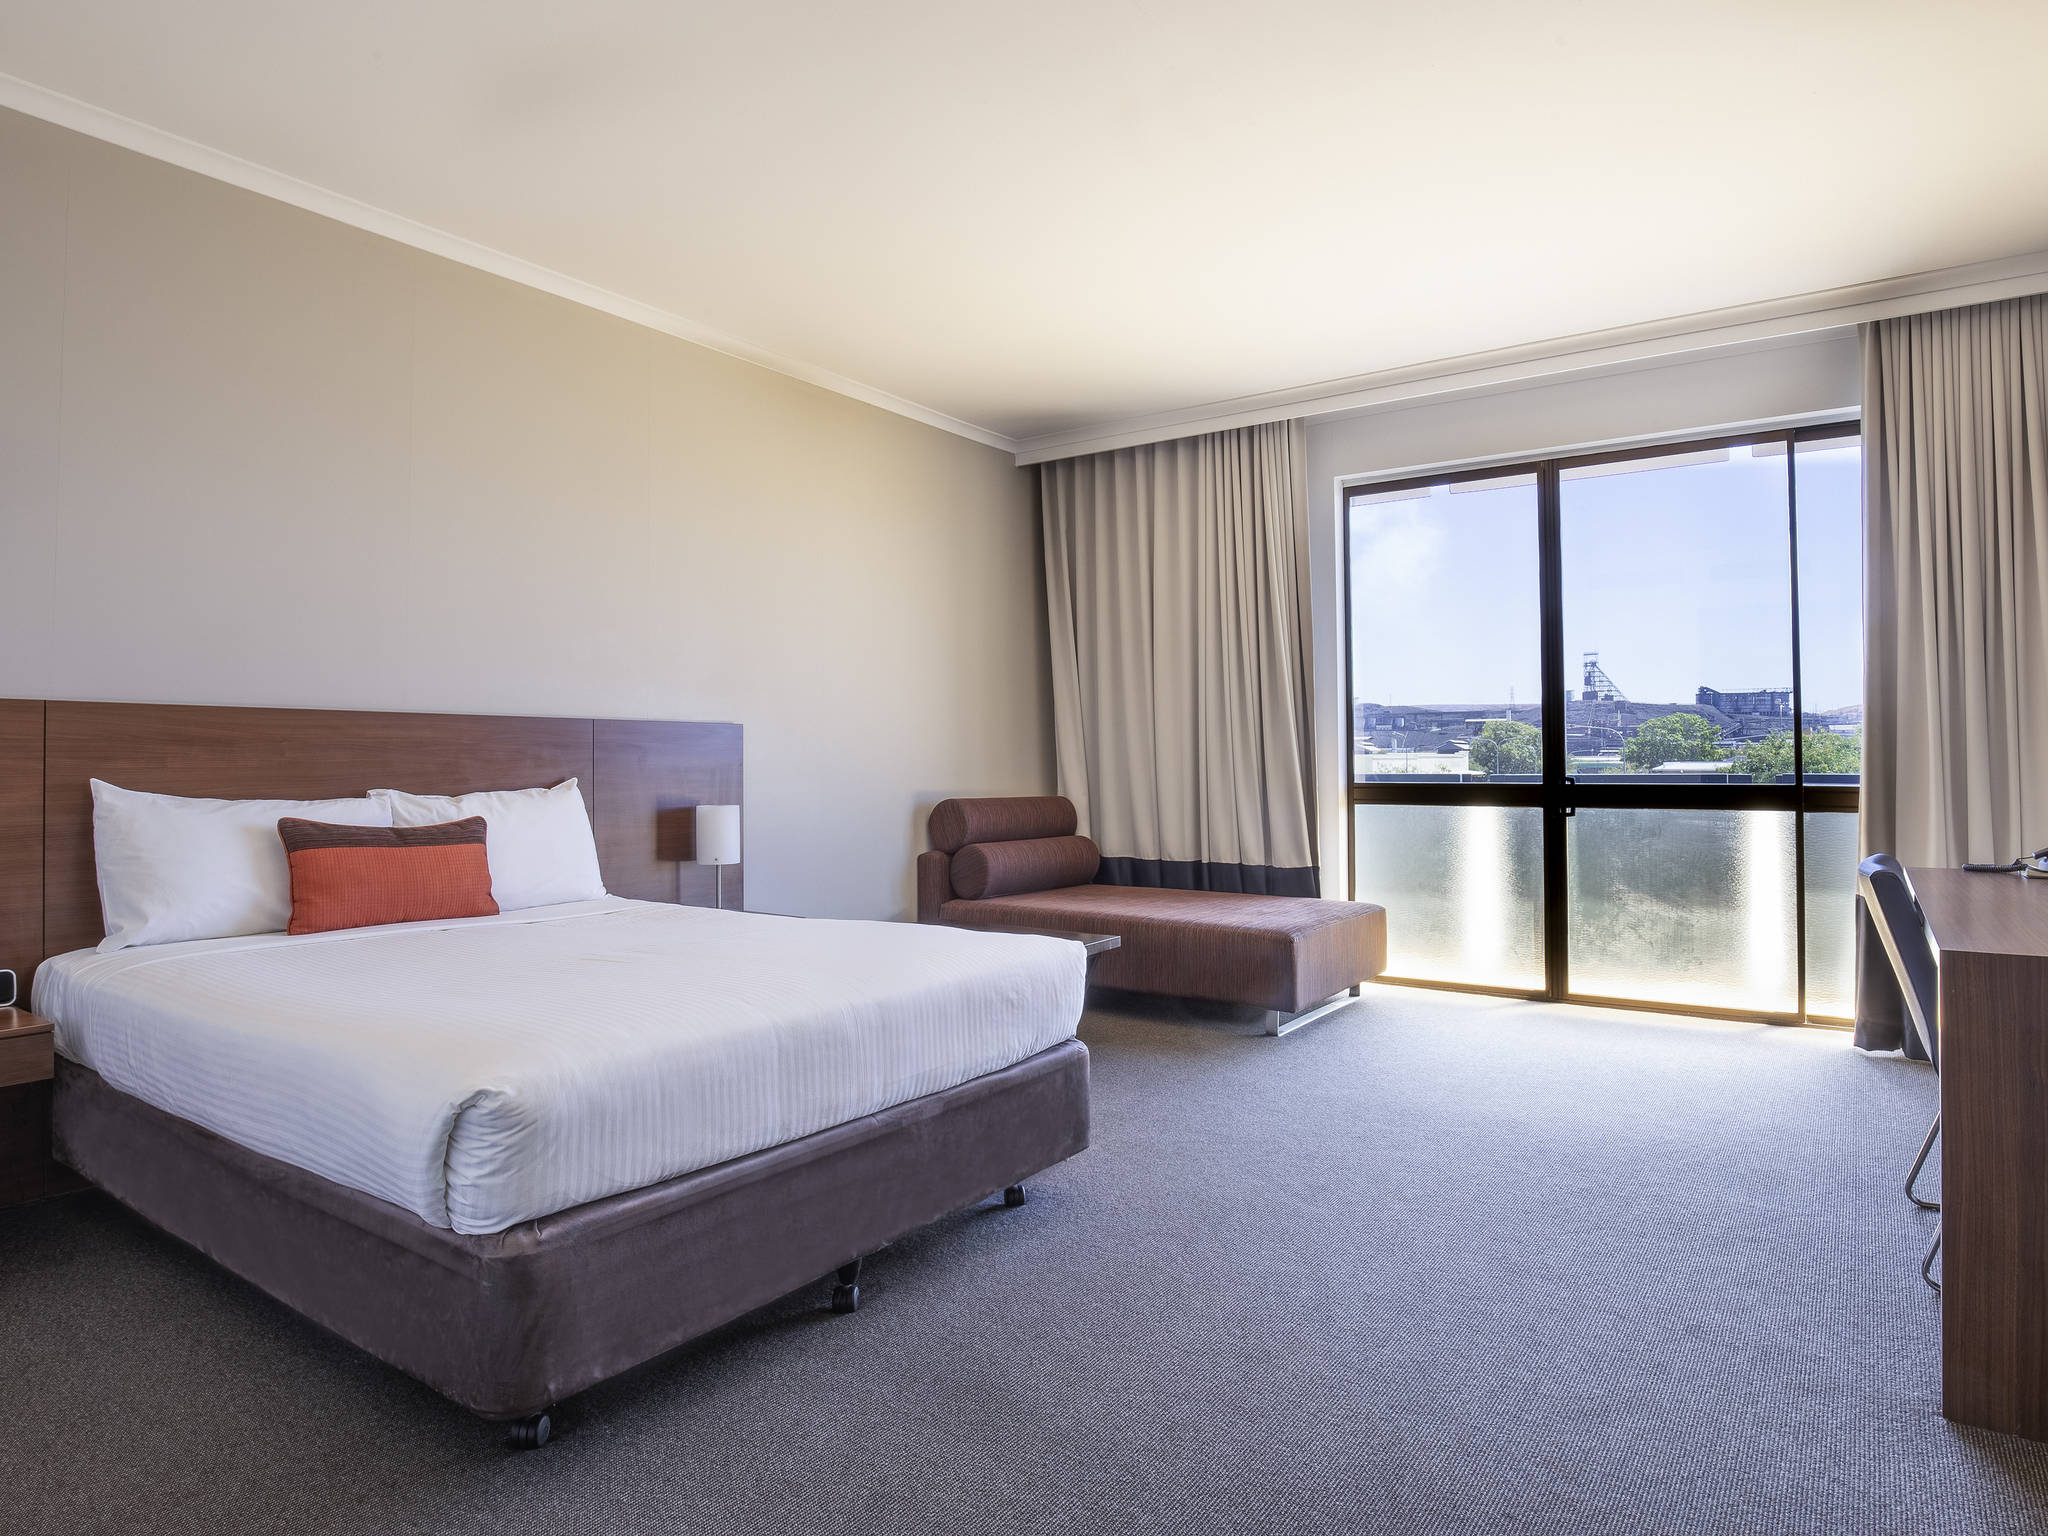 mount isa chat rooms Book flights to over 1000 international and domestic  mount isa cloncurry blackall  learn about valet parking, and book chauffeured transfers or meeting rooms.